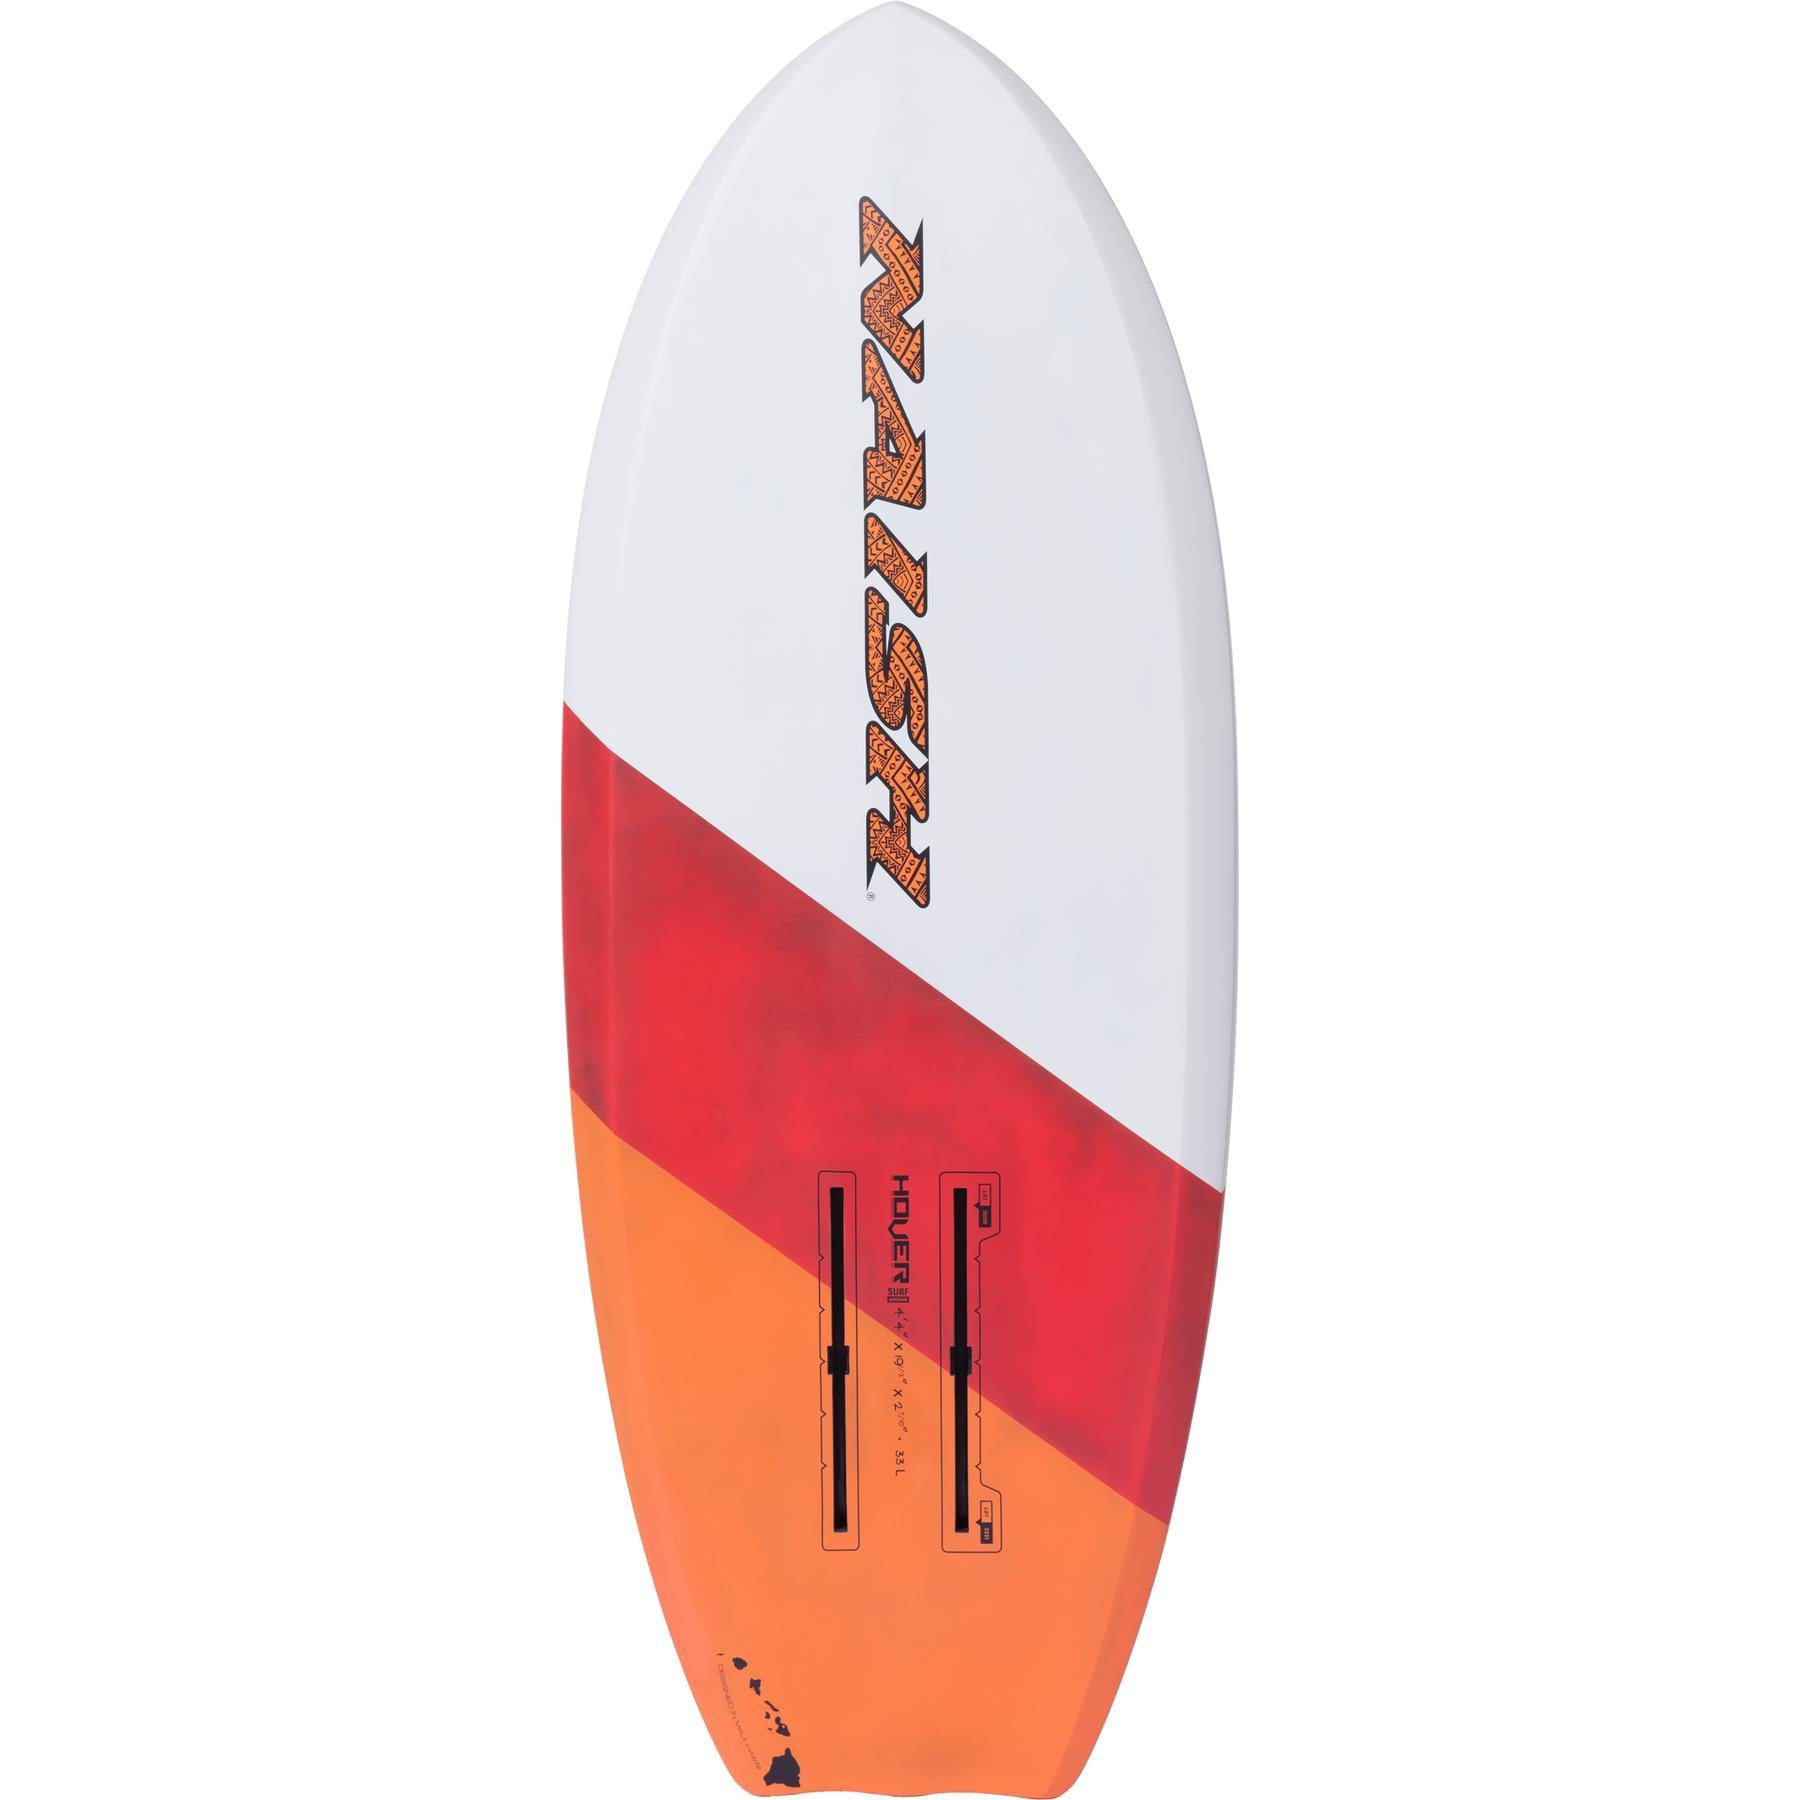 Naish S25 Hover Surf Ascend | CU Sup Foil Board-Big Winds